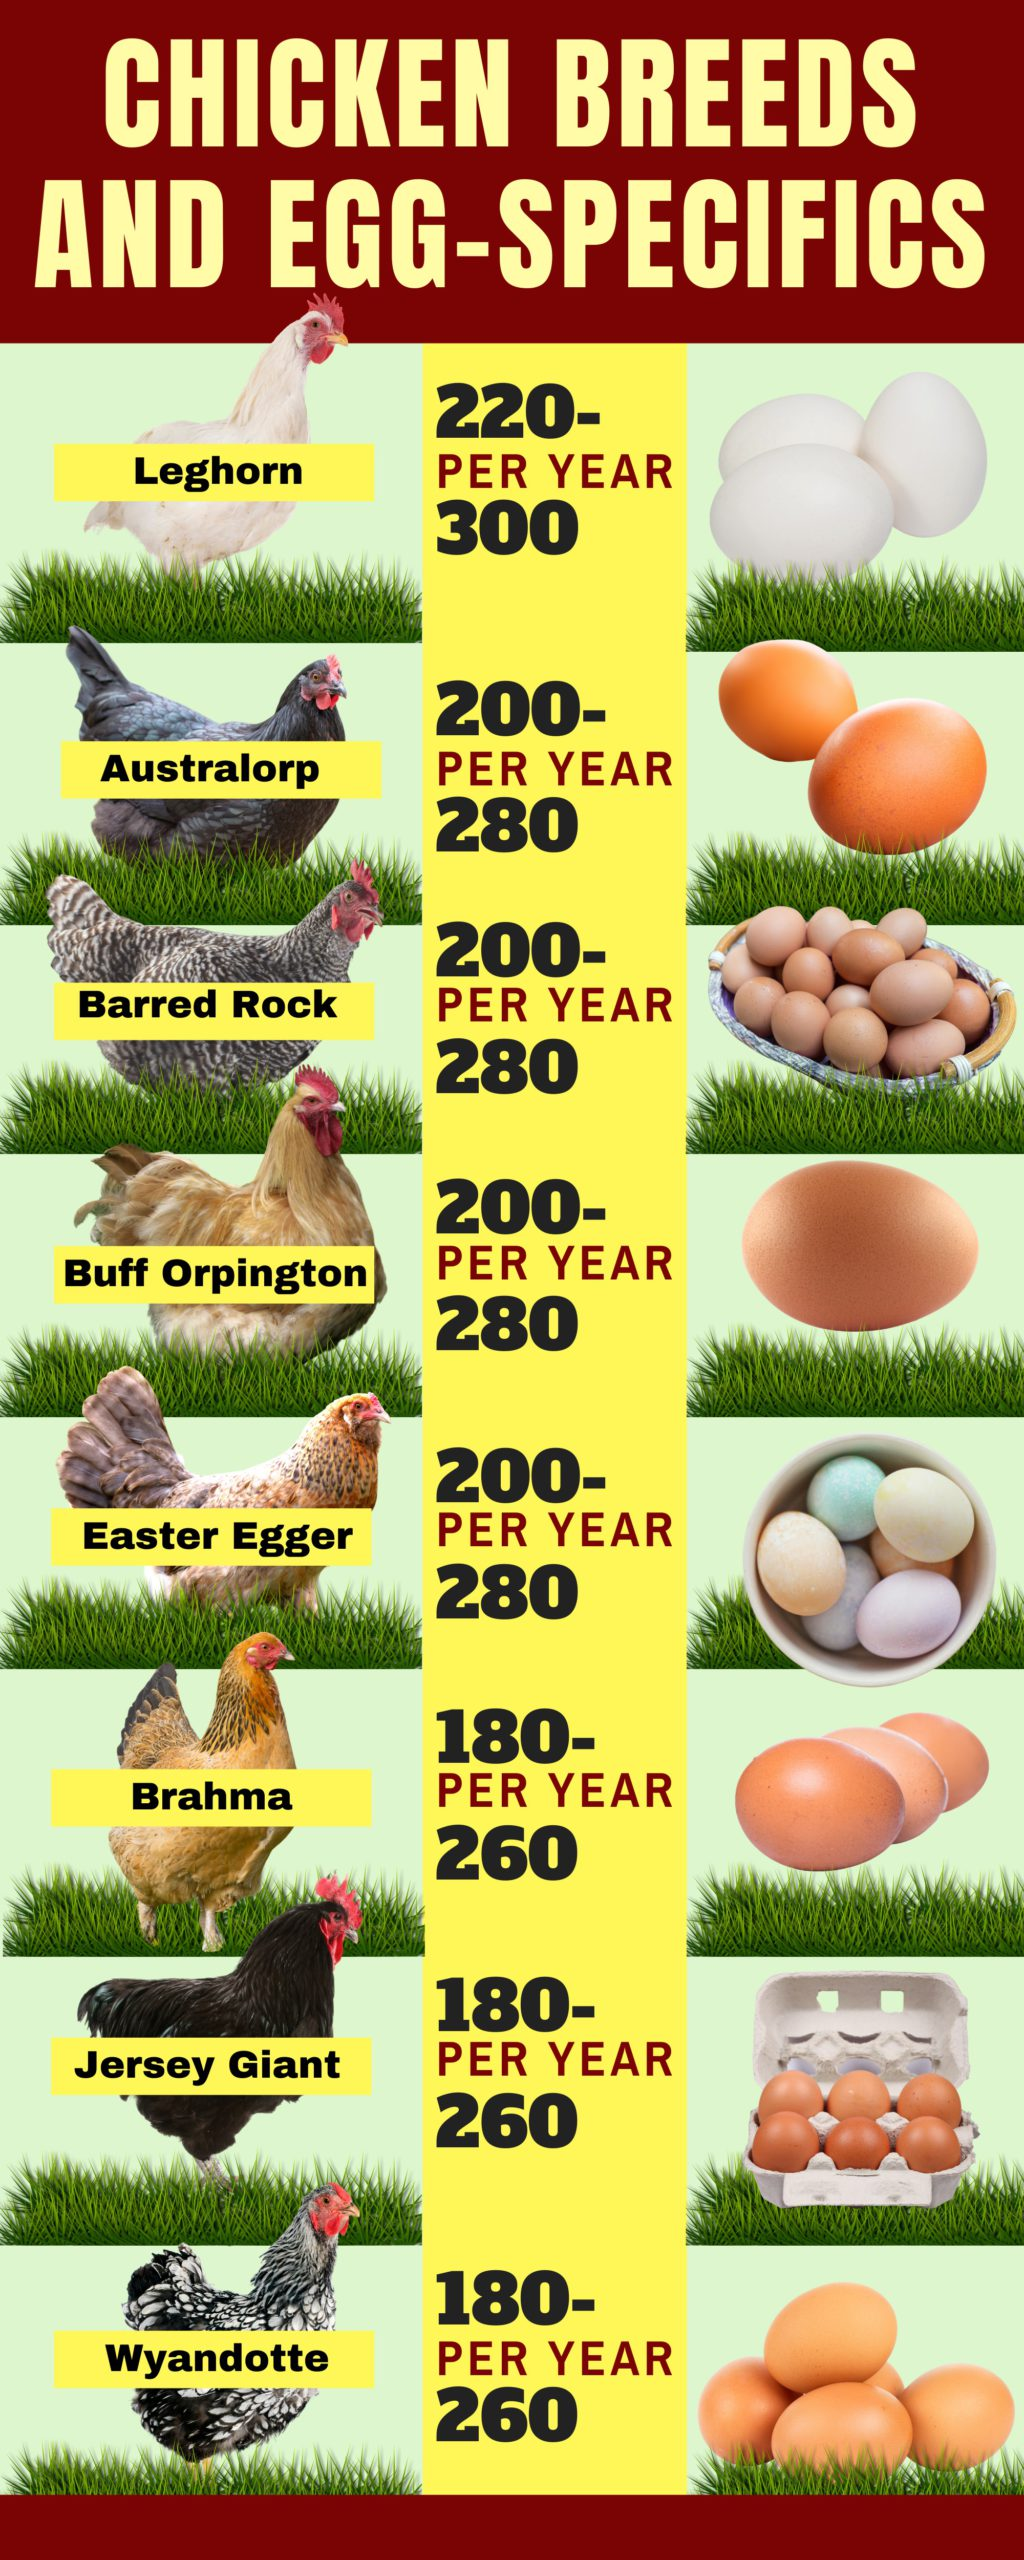 how to sell chicken eggs profit